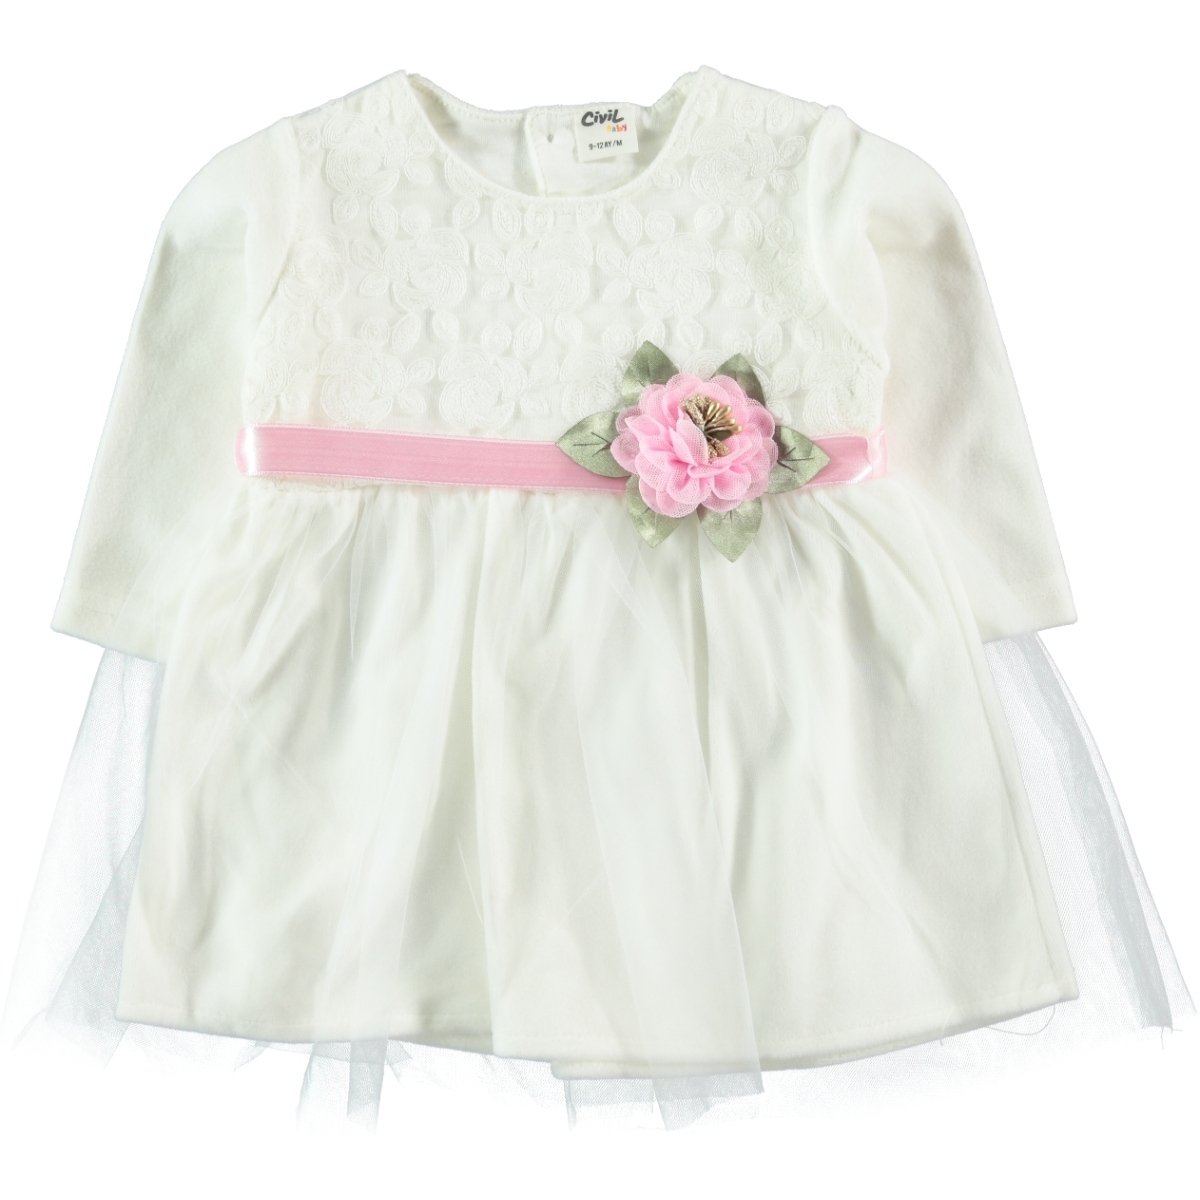 Civil Baby Pink Girl Baby Dress 9-18 Months